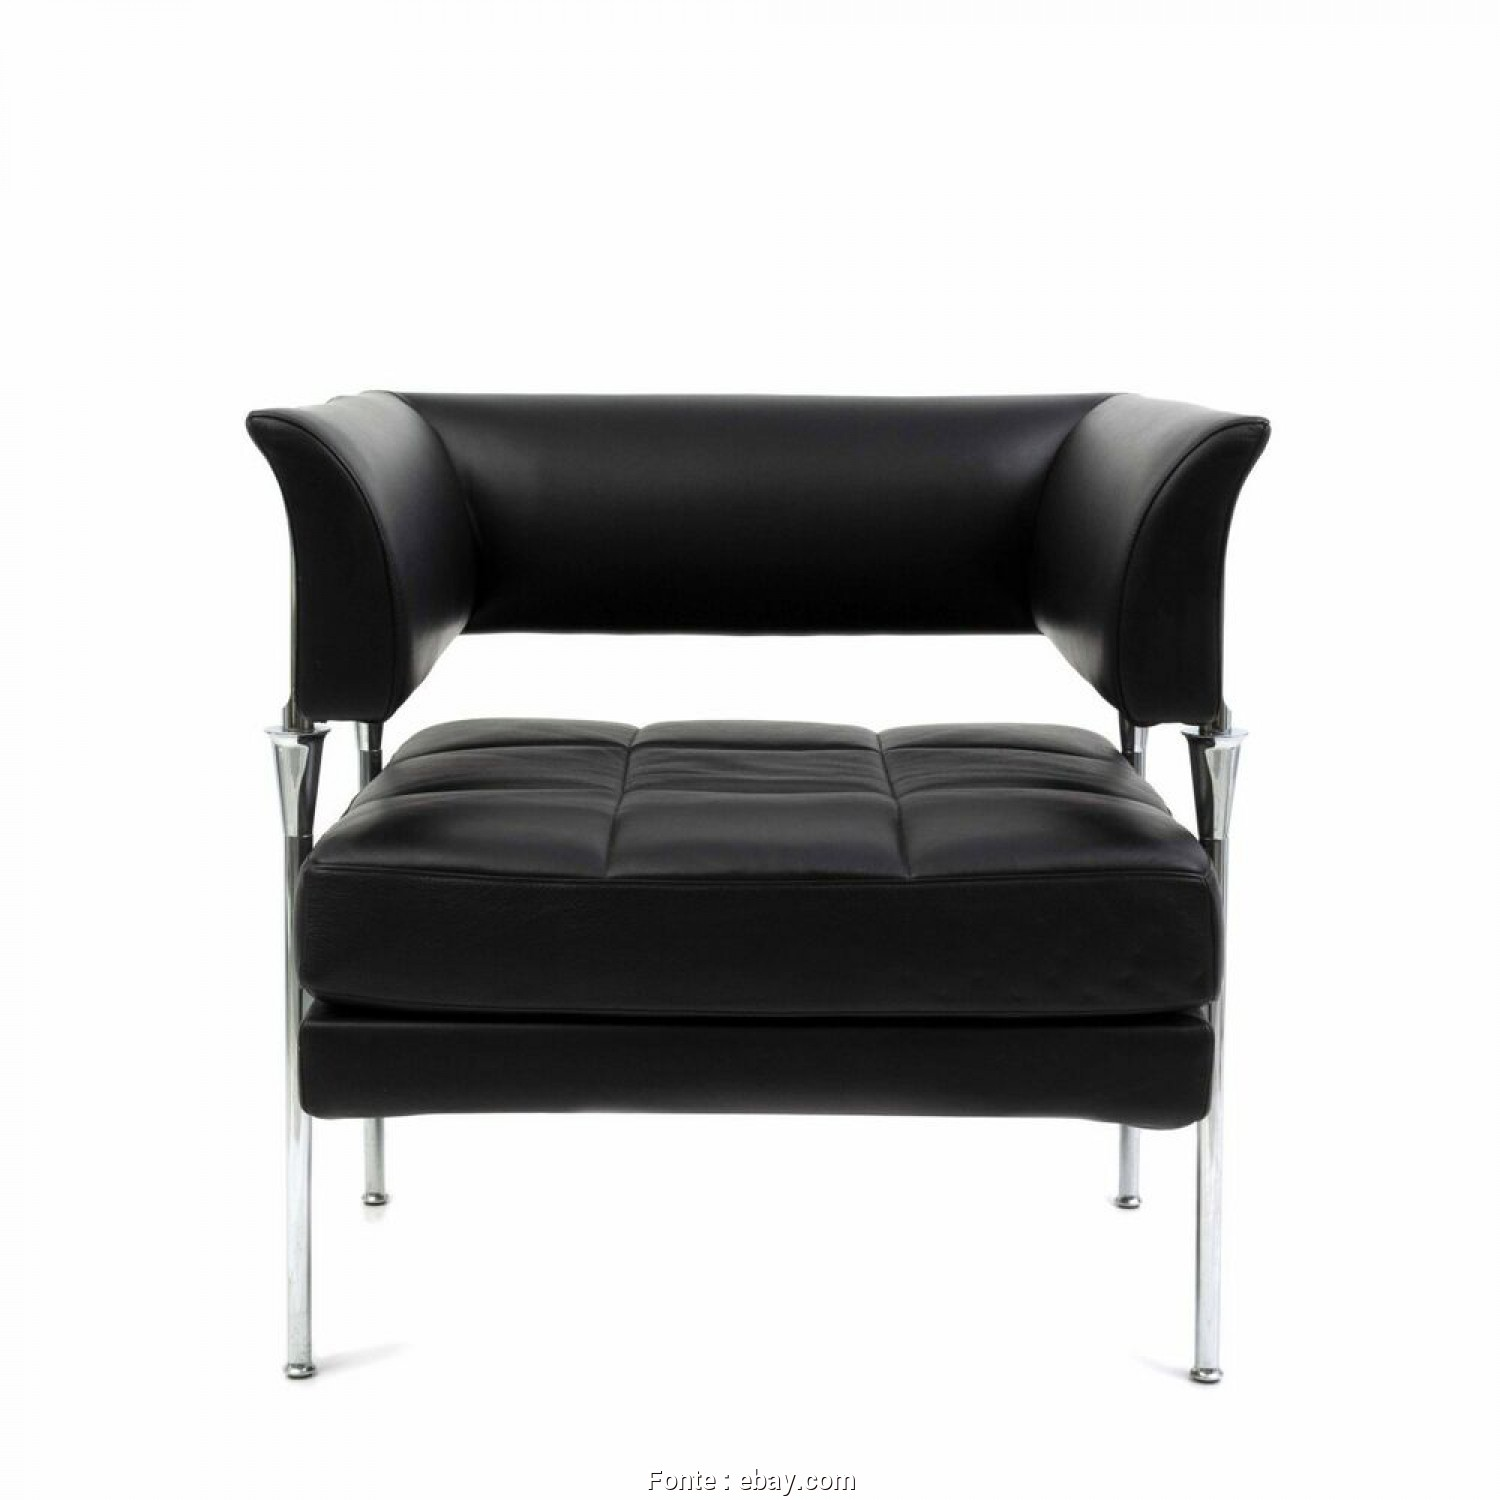 Poltrone Vintage Ebay, Loveable Details About POLTRONA FRAU HYDRA CASTOR LEATHER CHAIR BY LUCA SCACCHETTI (3 AVAILABLE)